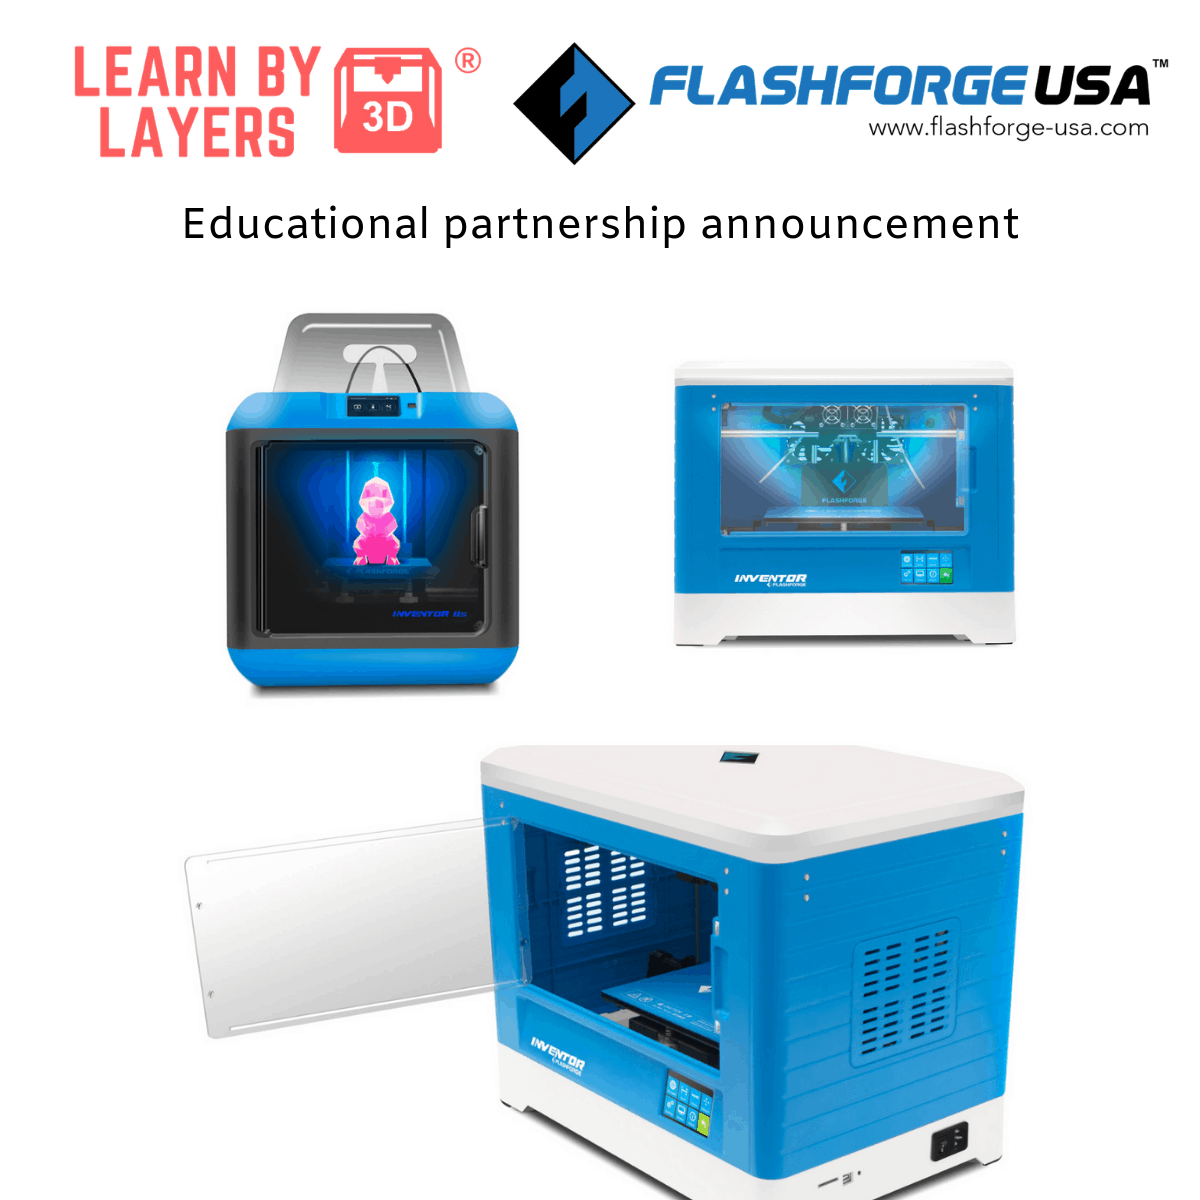 flashforge and learnbylayers educational partnership